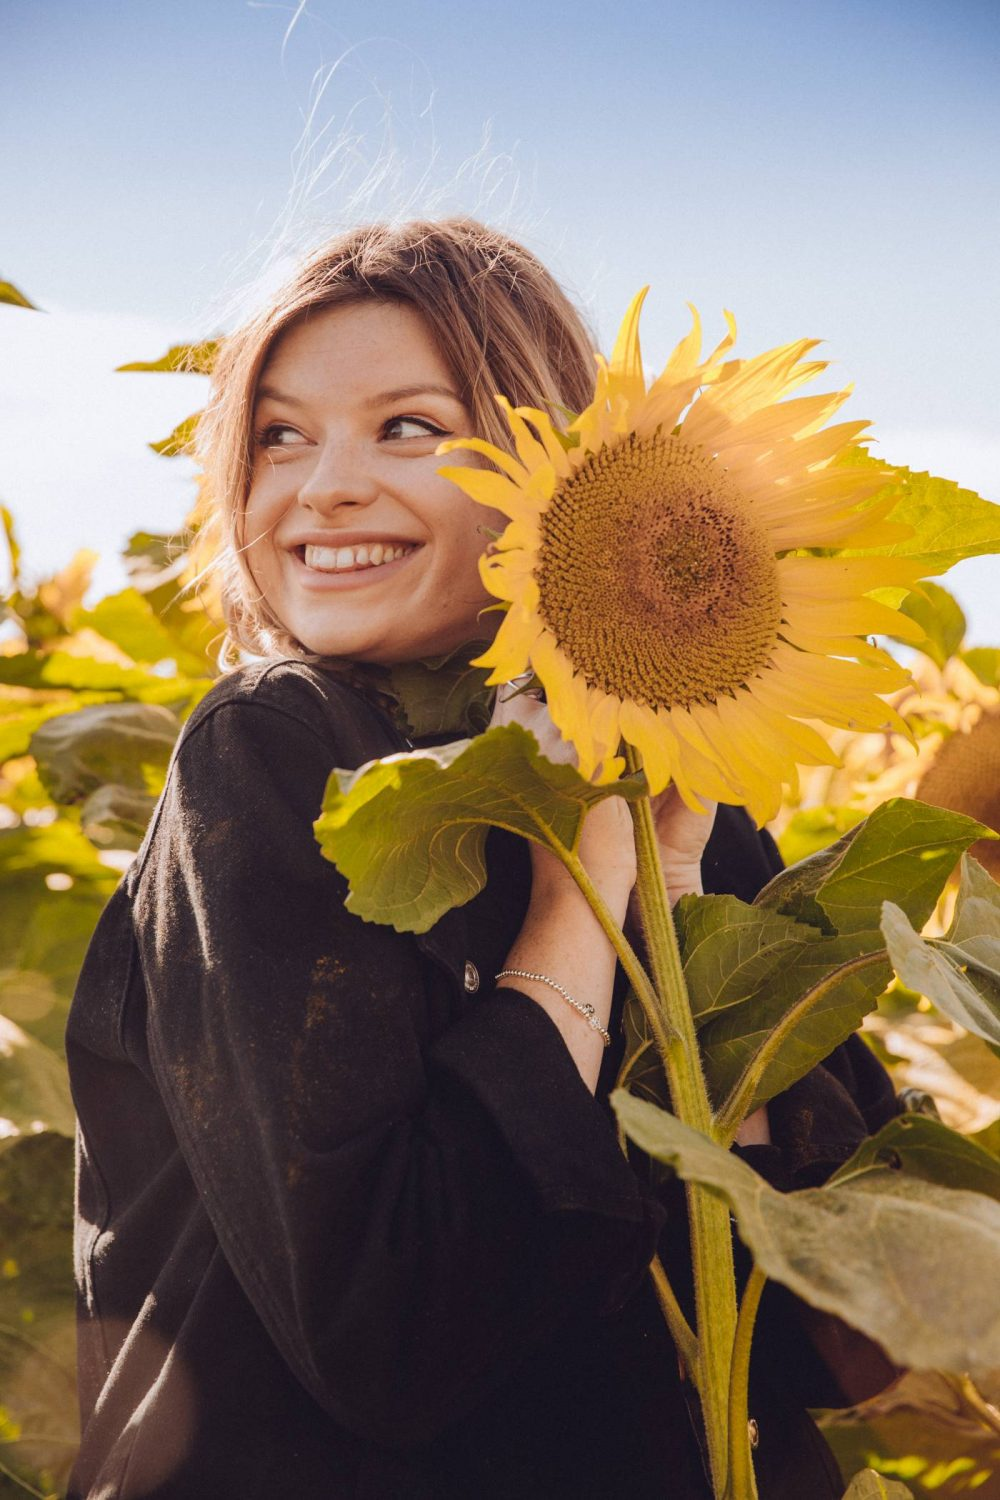 Sophie etc smiling with a giant sunflower at the Patch MK